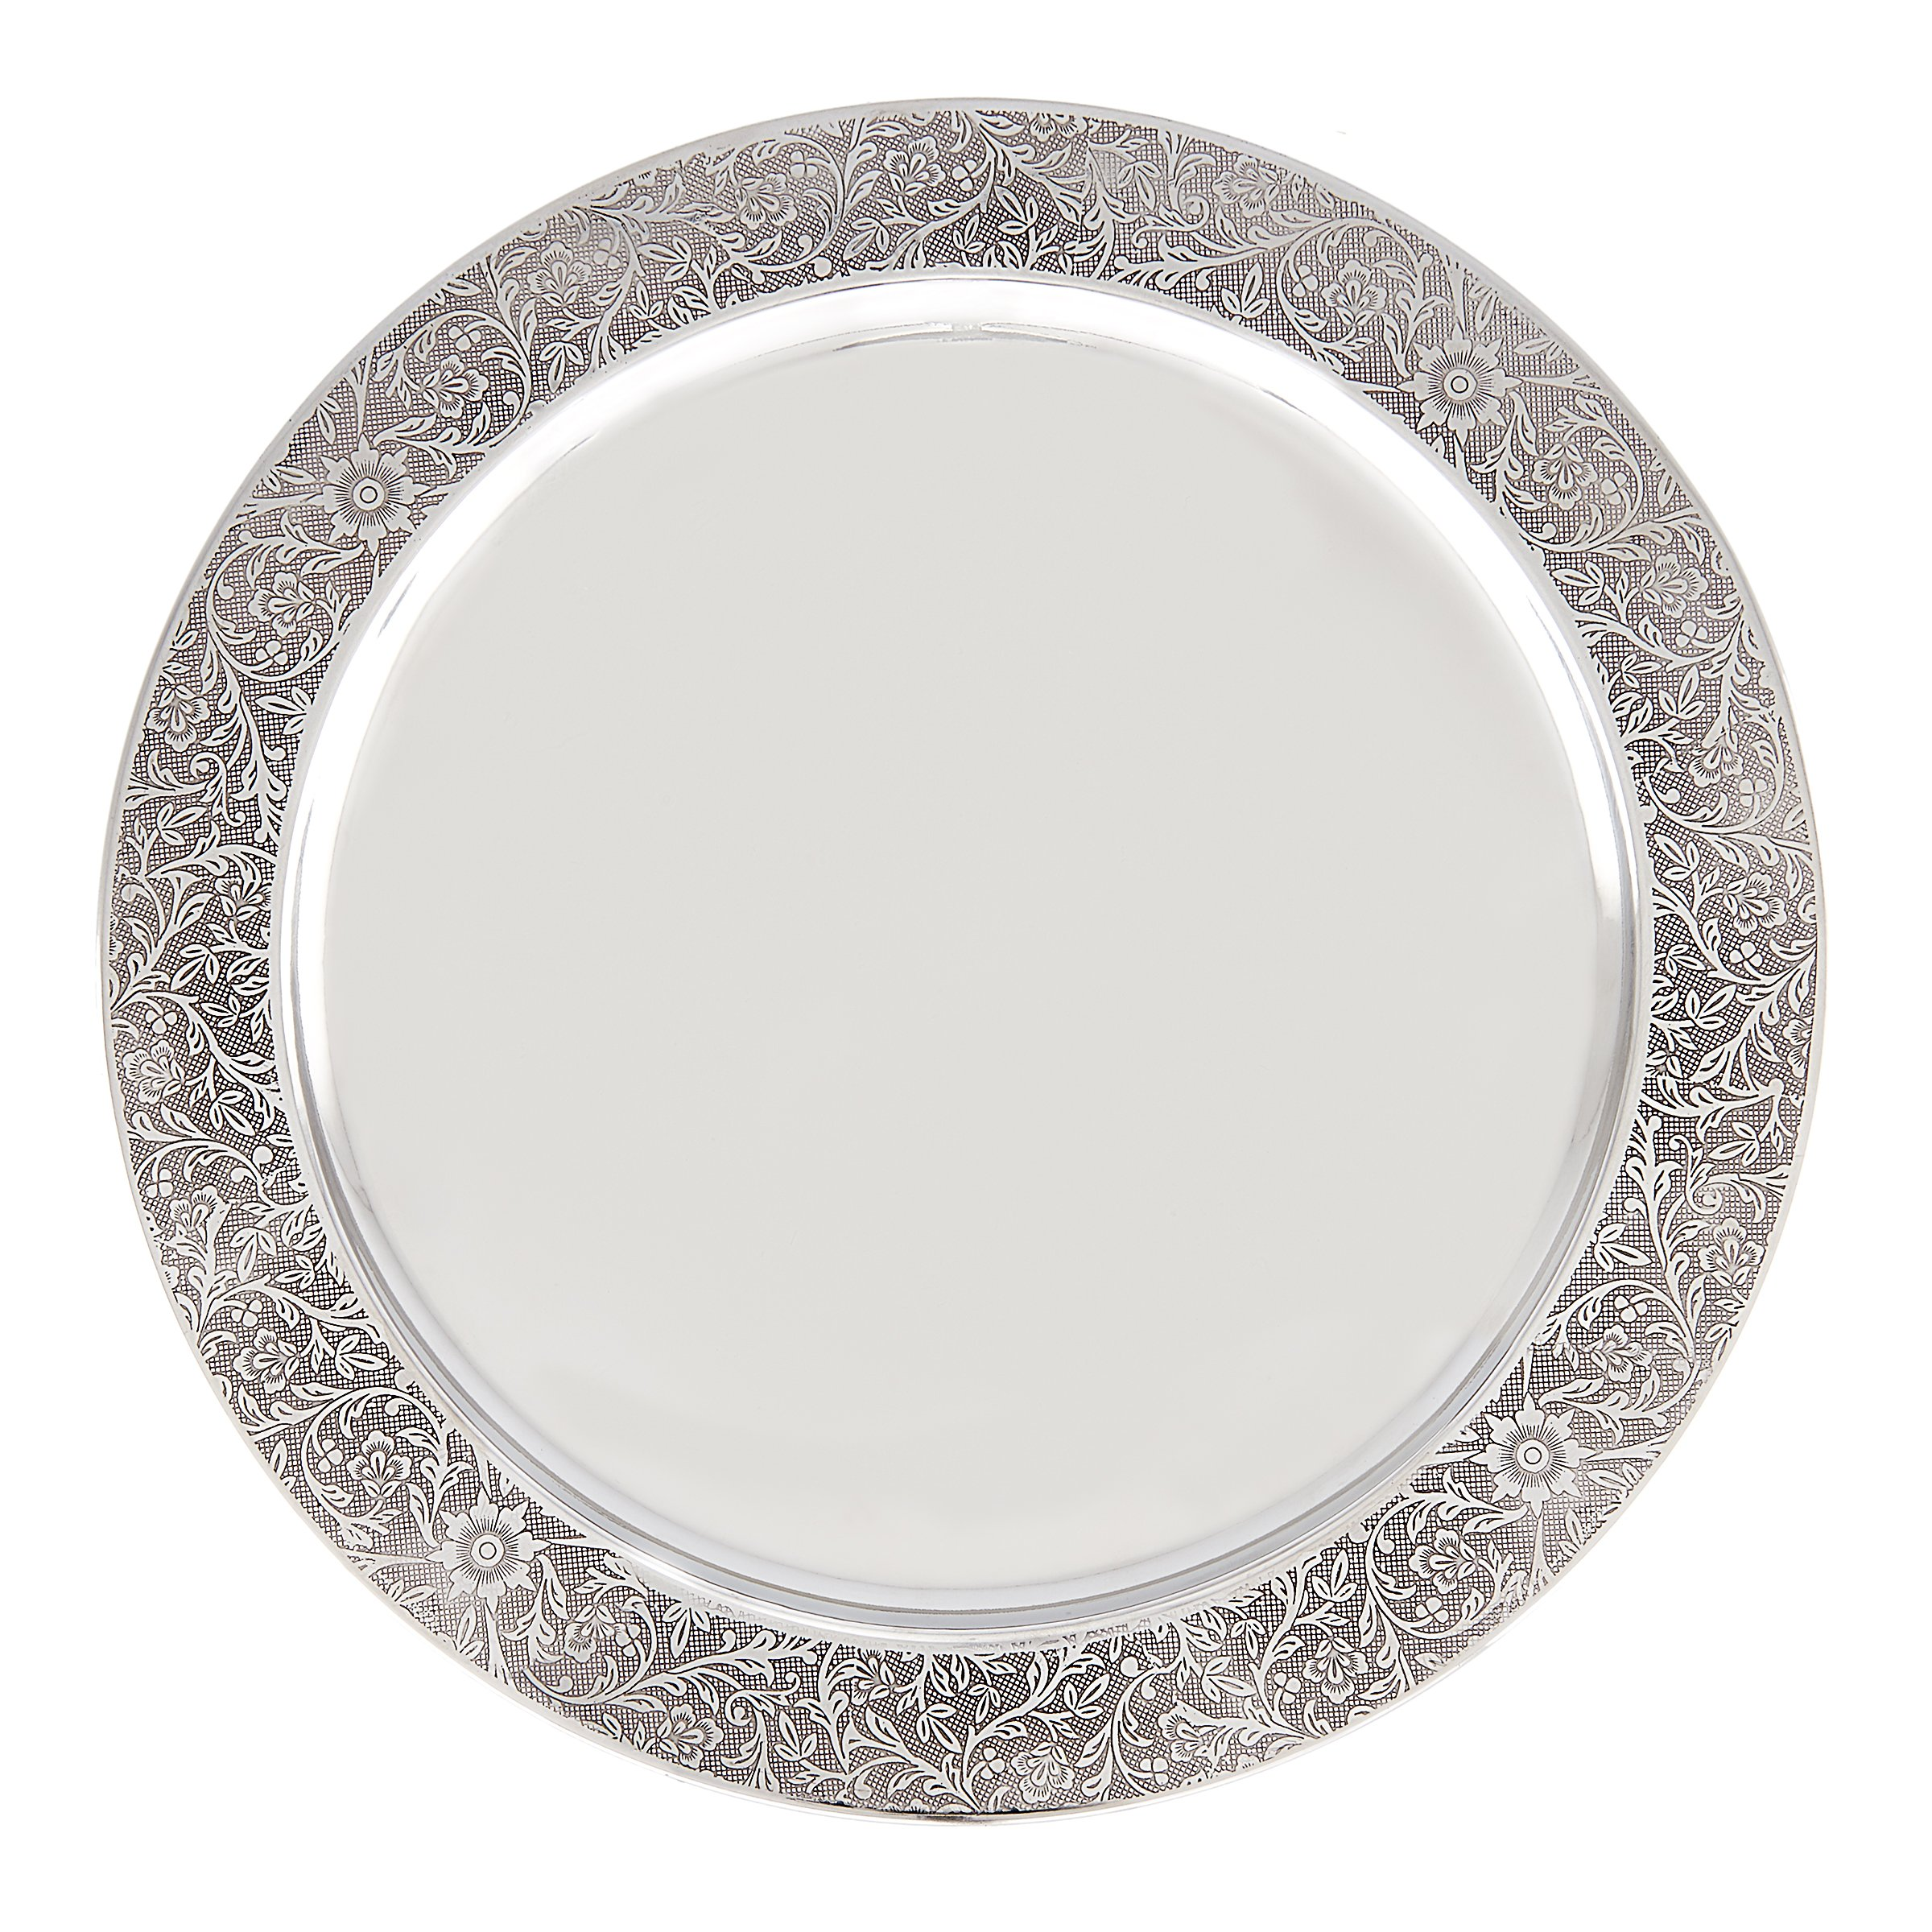 Old Dutch 13'' Etched Rim Charger Plate (Set of 6), Shiny Stainless Steel